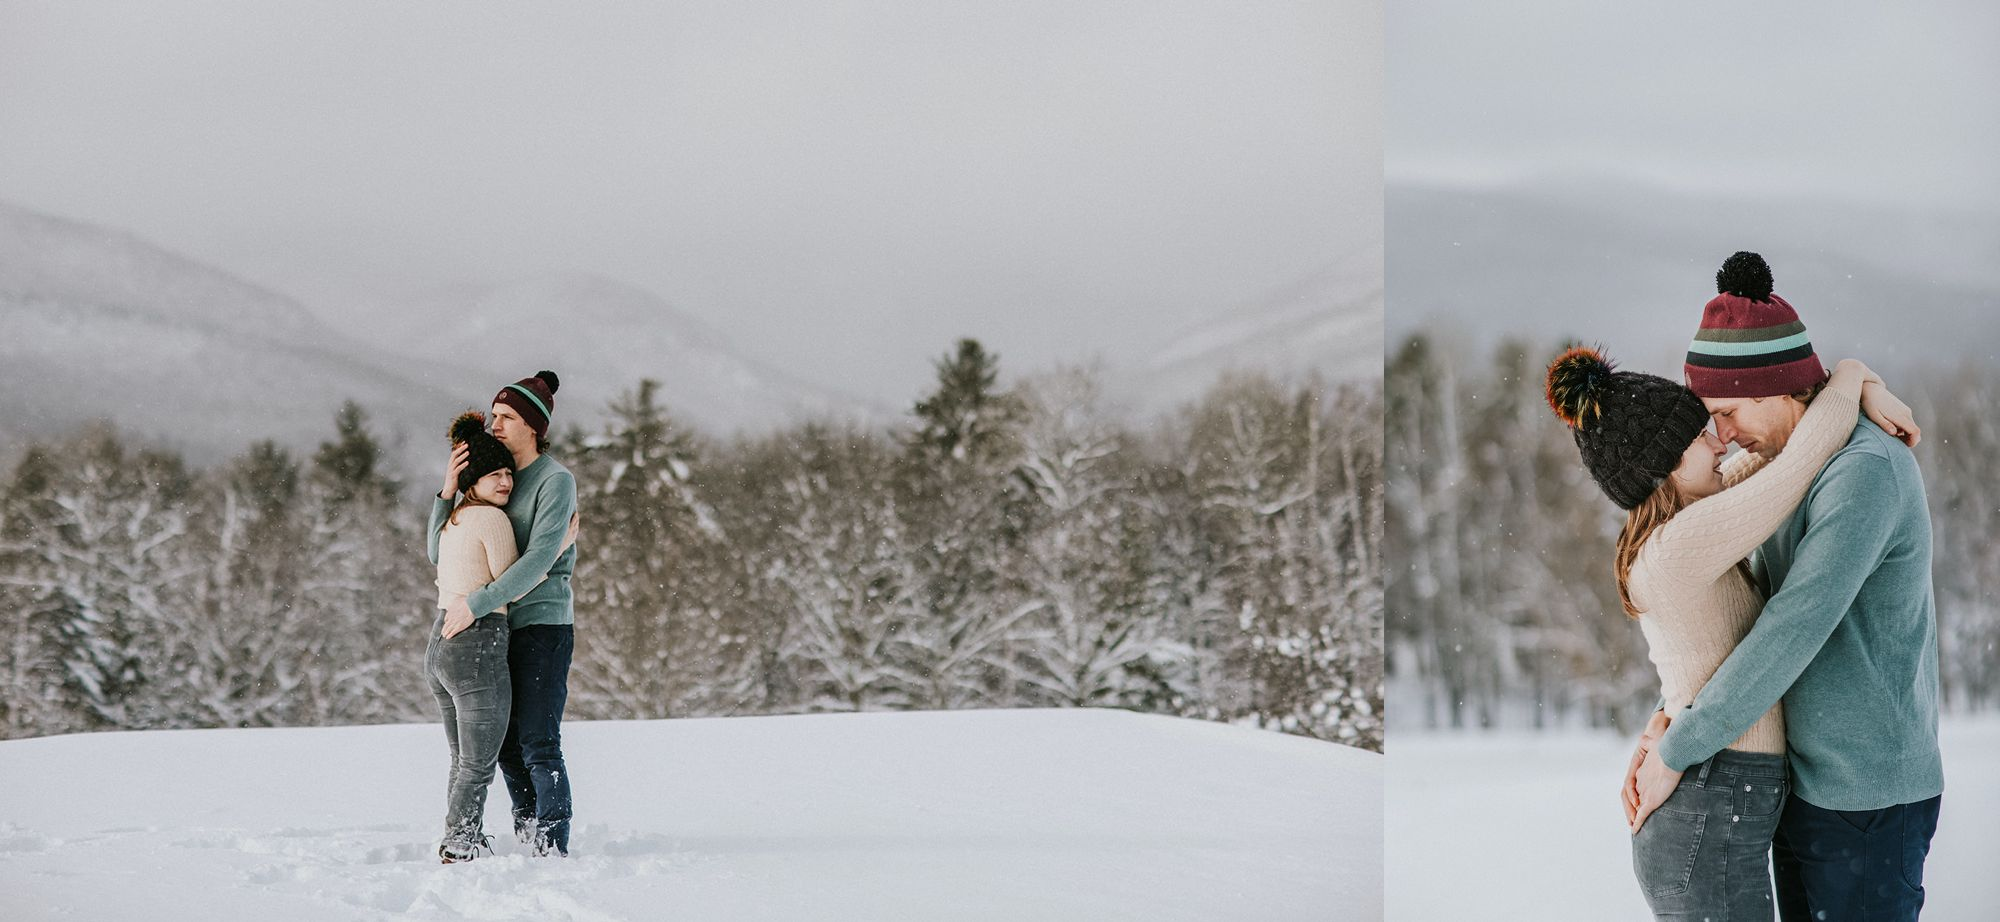 Trapp Family Lodge Viewpoints Engagement